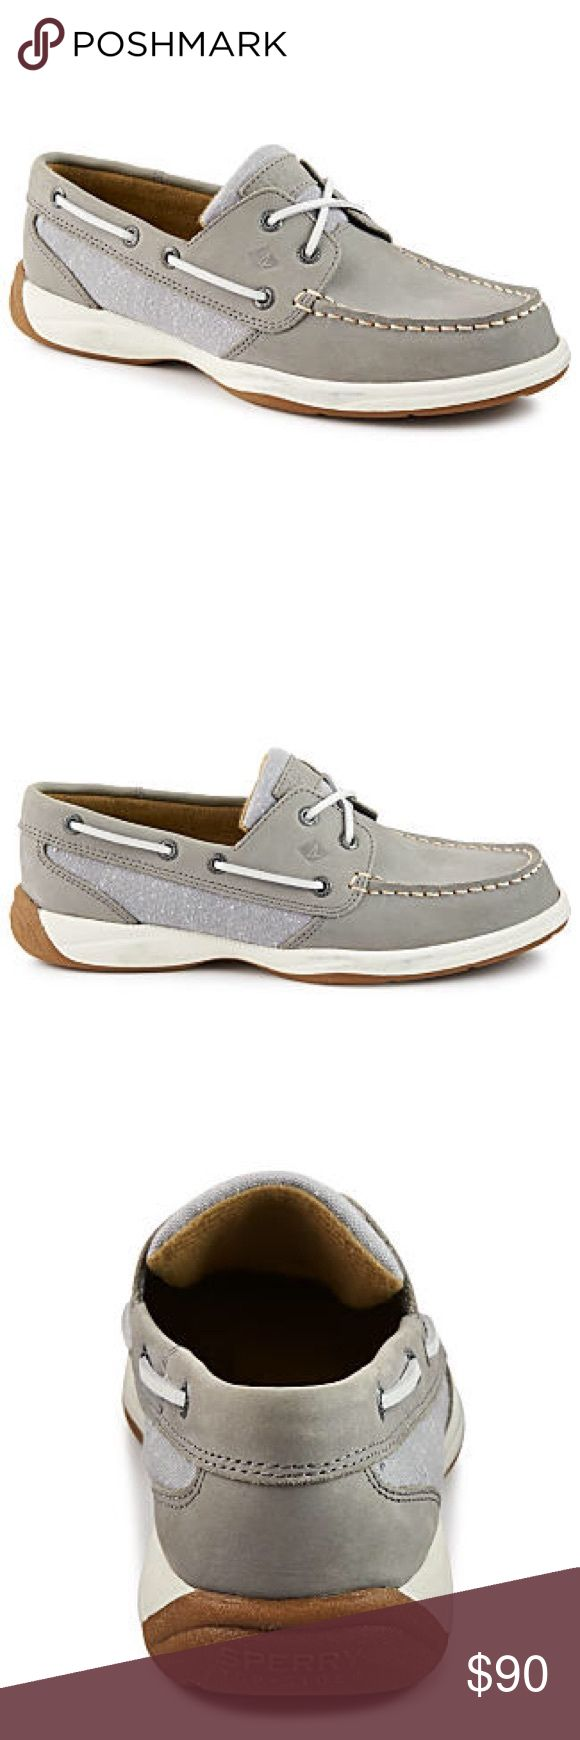 ☀️NWT☀️ Sperry Boat Shoes ⛵️☀️ Brand new!! ☀️⛵️ Nail a nautical look in this women's shoe by Sperry. Luxurious leather keeps it completely comfy, and the classic silhouette is always on trend.😎 (no trades) Sperry Shoes Flats & Loafers